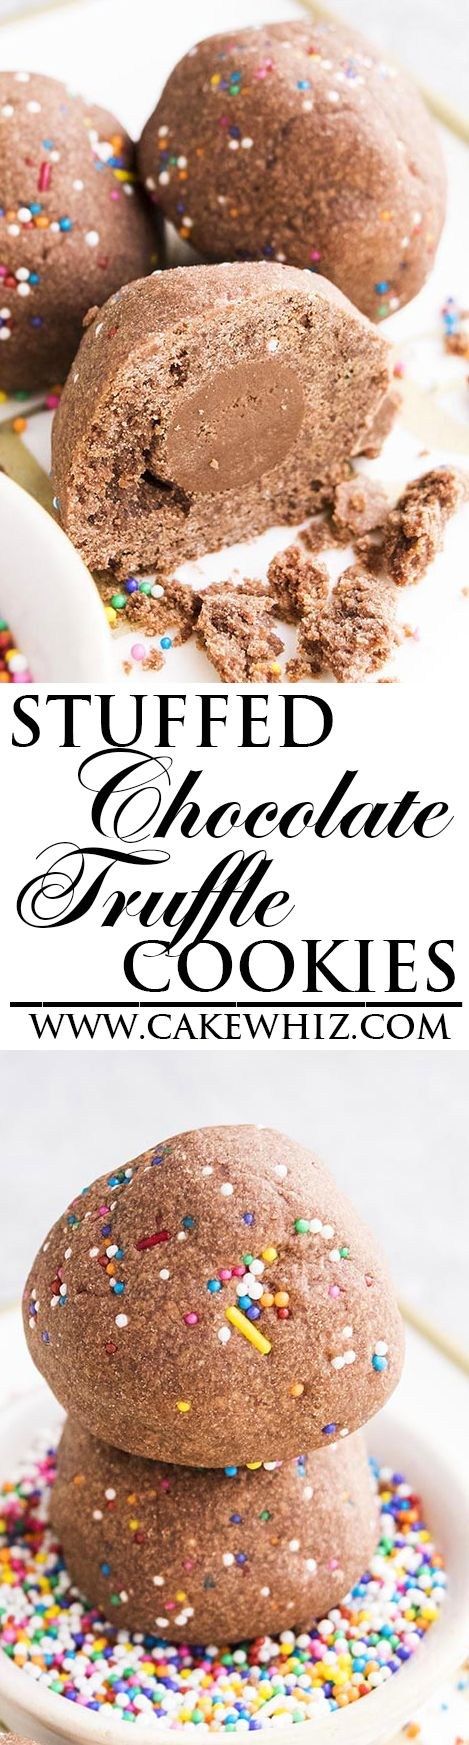 These rich STUFFED CHOCOLATE TRUFFLE COOKIES with sprinkles are a fun spin on classic chocolate snowball cookies. Great homemade gift for Christmas holidays too. From cakewhiz.com